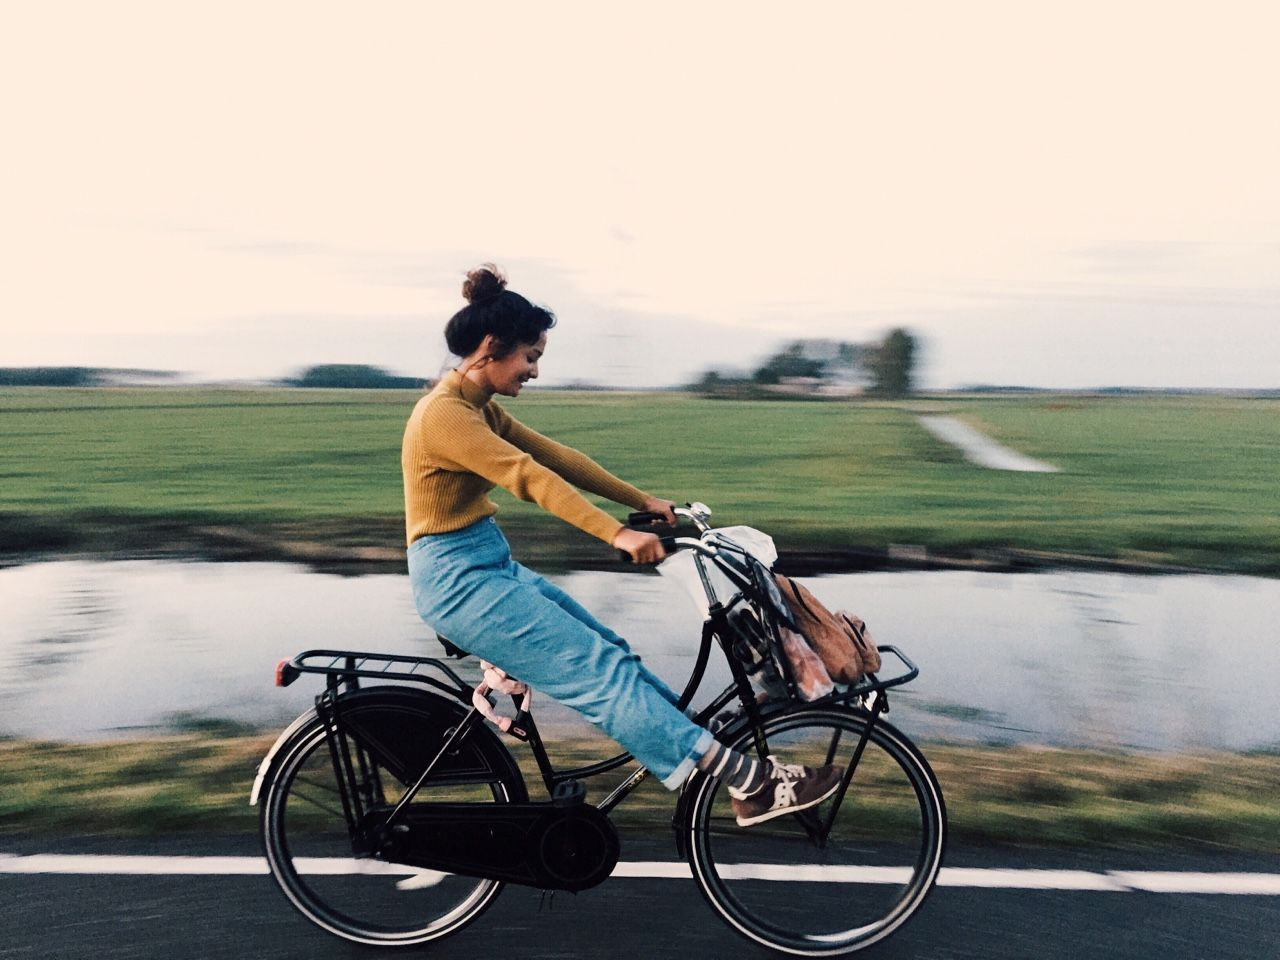 My last bike ride in amsterdam, after afternoons in the city, it was always magic ending the evening riding through the northern countryside and falling asleep on the farm. I will be back.